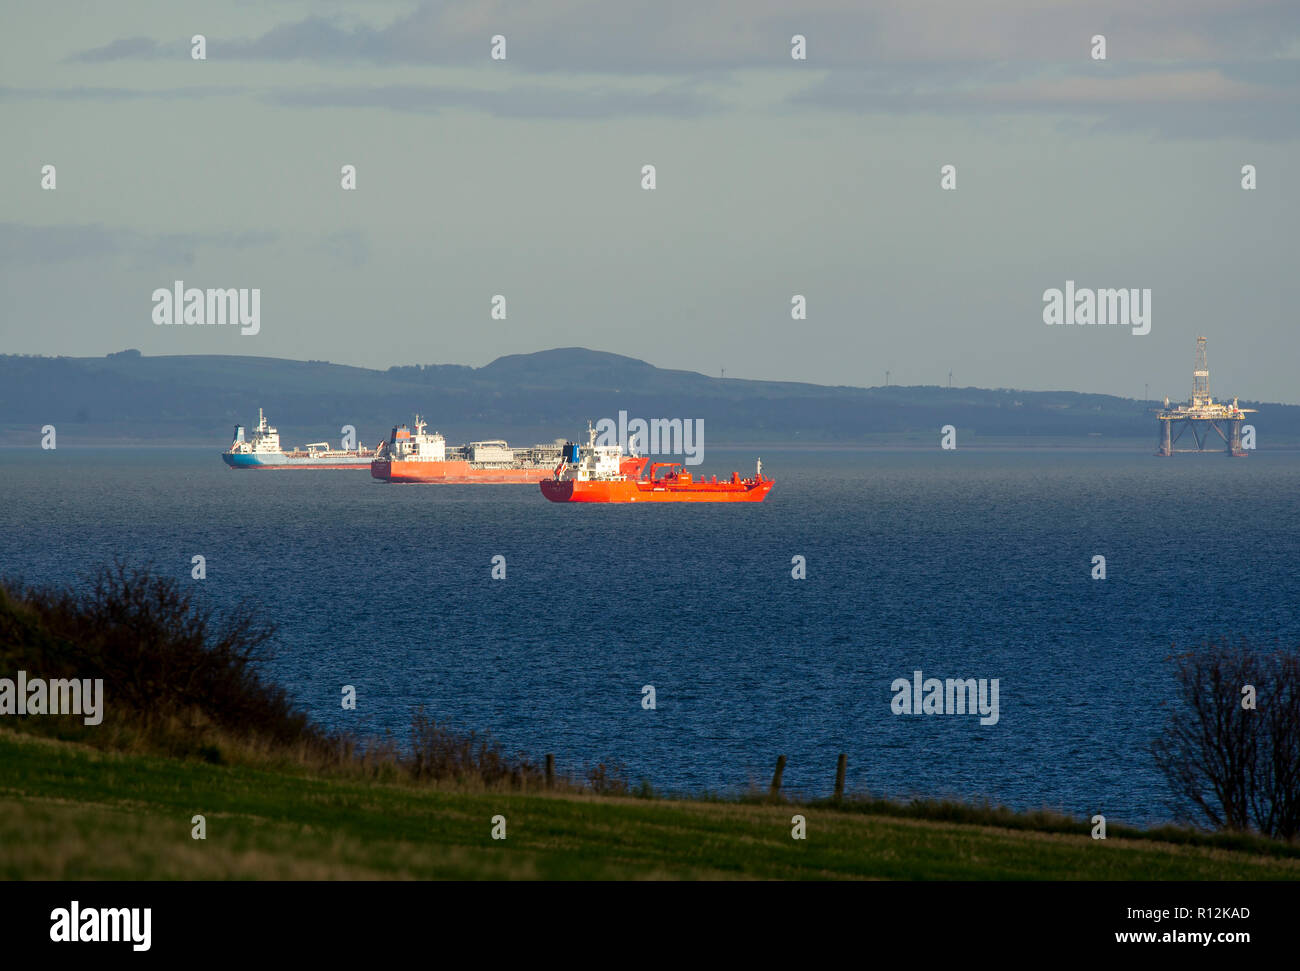 Commercial ships anchored off the east coast of Scotland in the Firth of Forth. - Stock Image